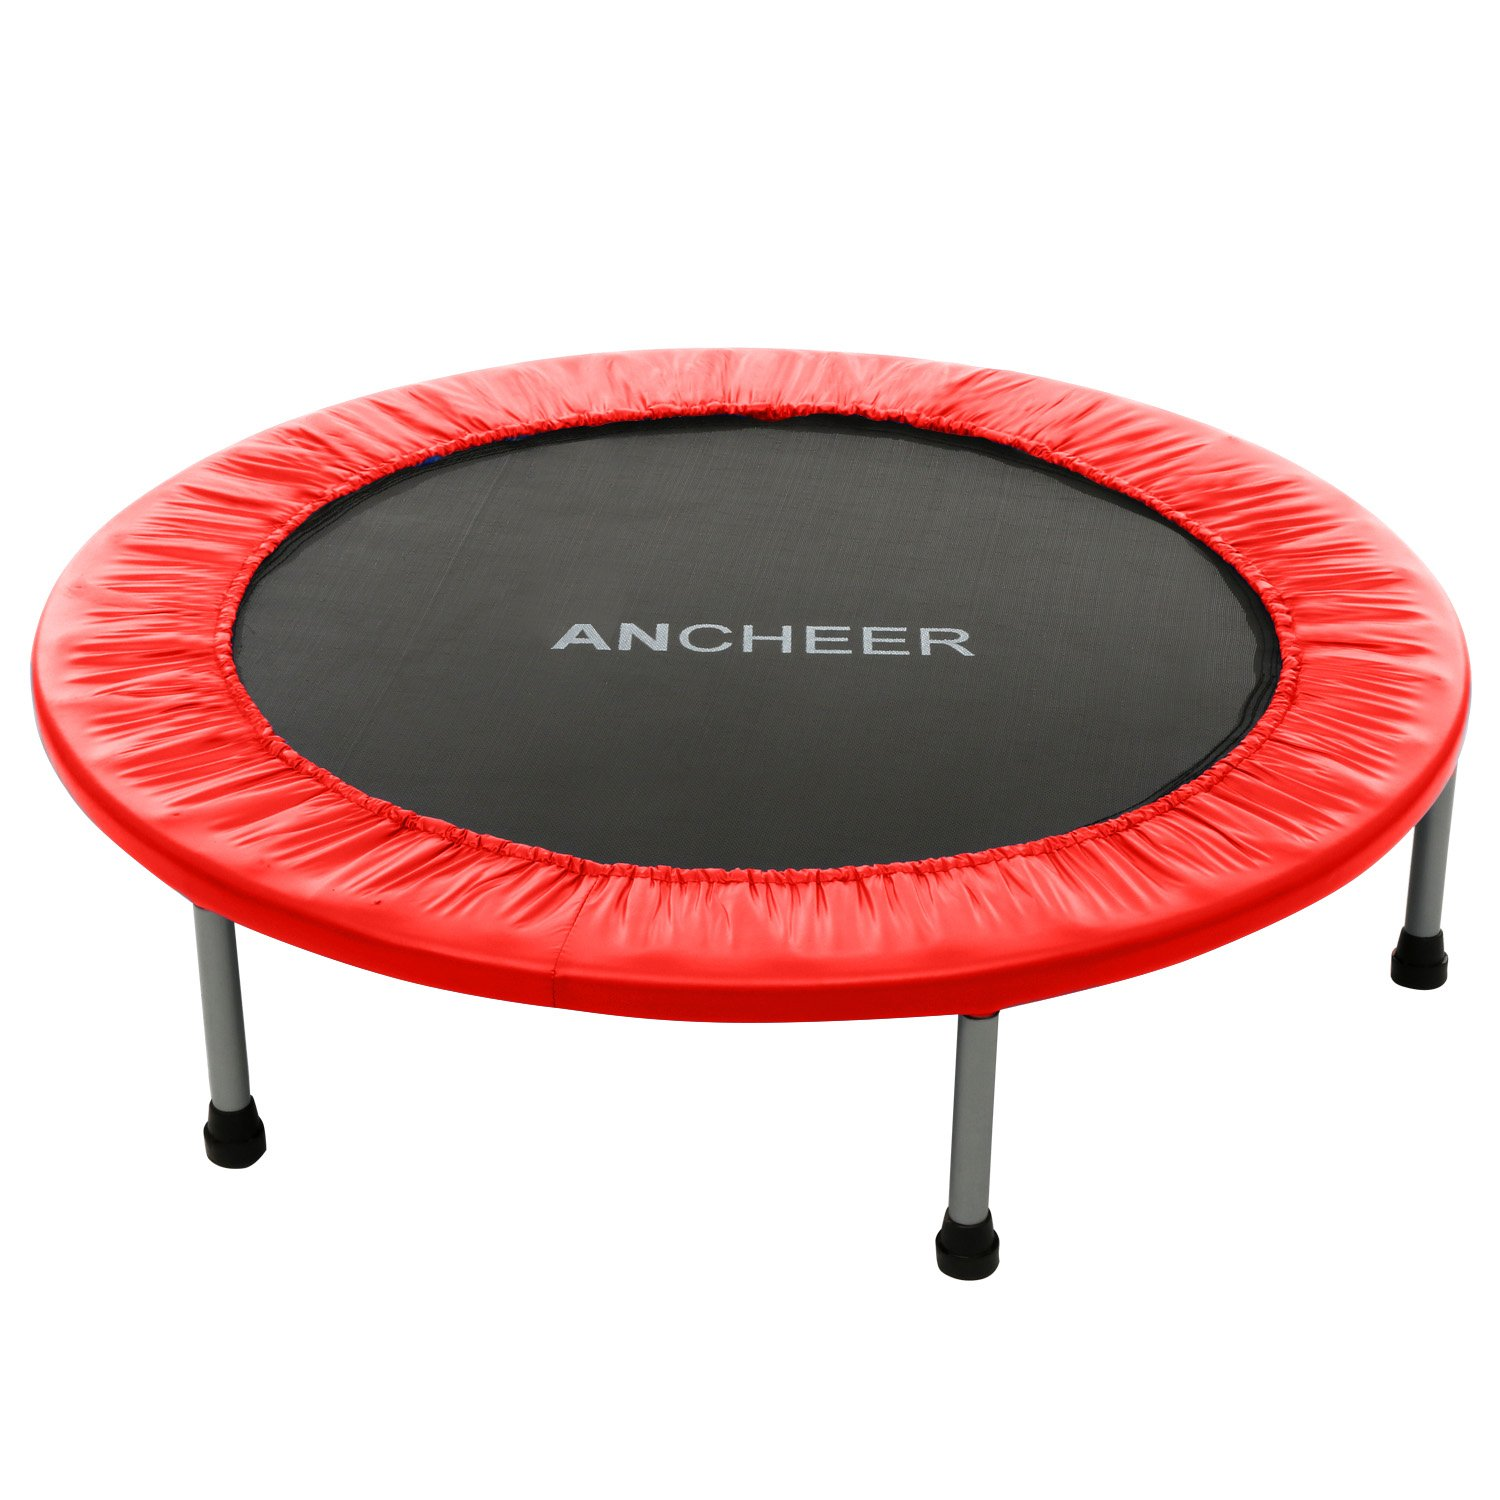 ANCHEER Max Load 220lbs Rebounder Trampoline with Safety Pad for Indoor Garden Workout Cardio Training (2 Sizes: 38 inch / 40 inch, Two Modes: Folding/Not Folding)